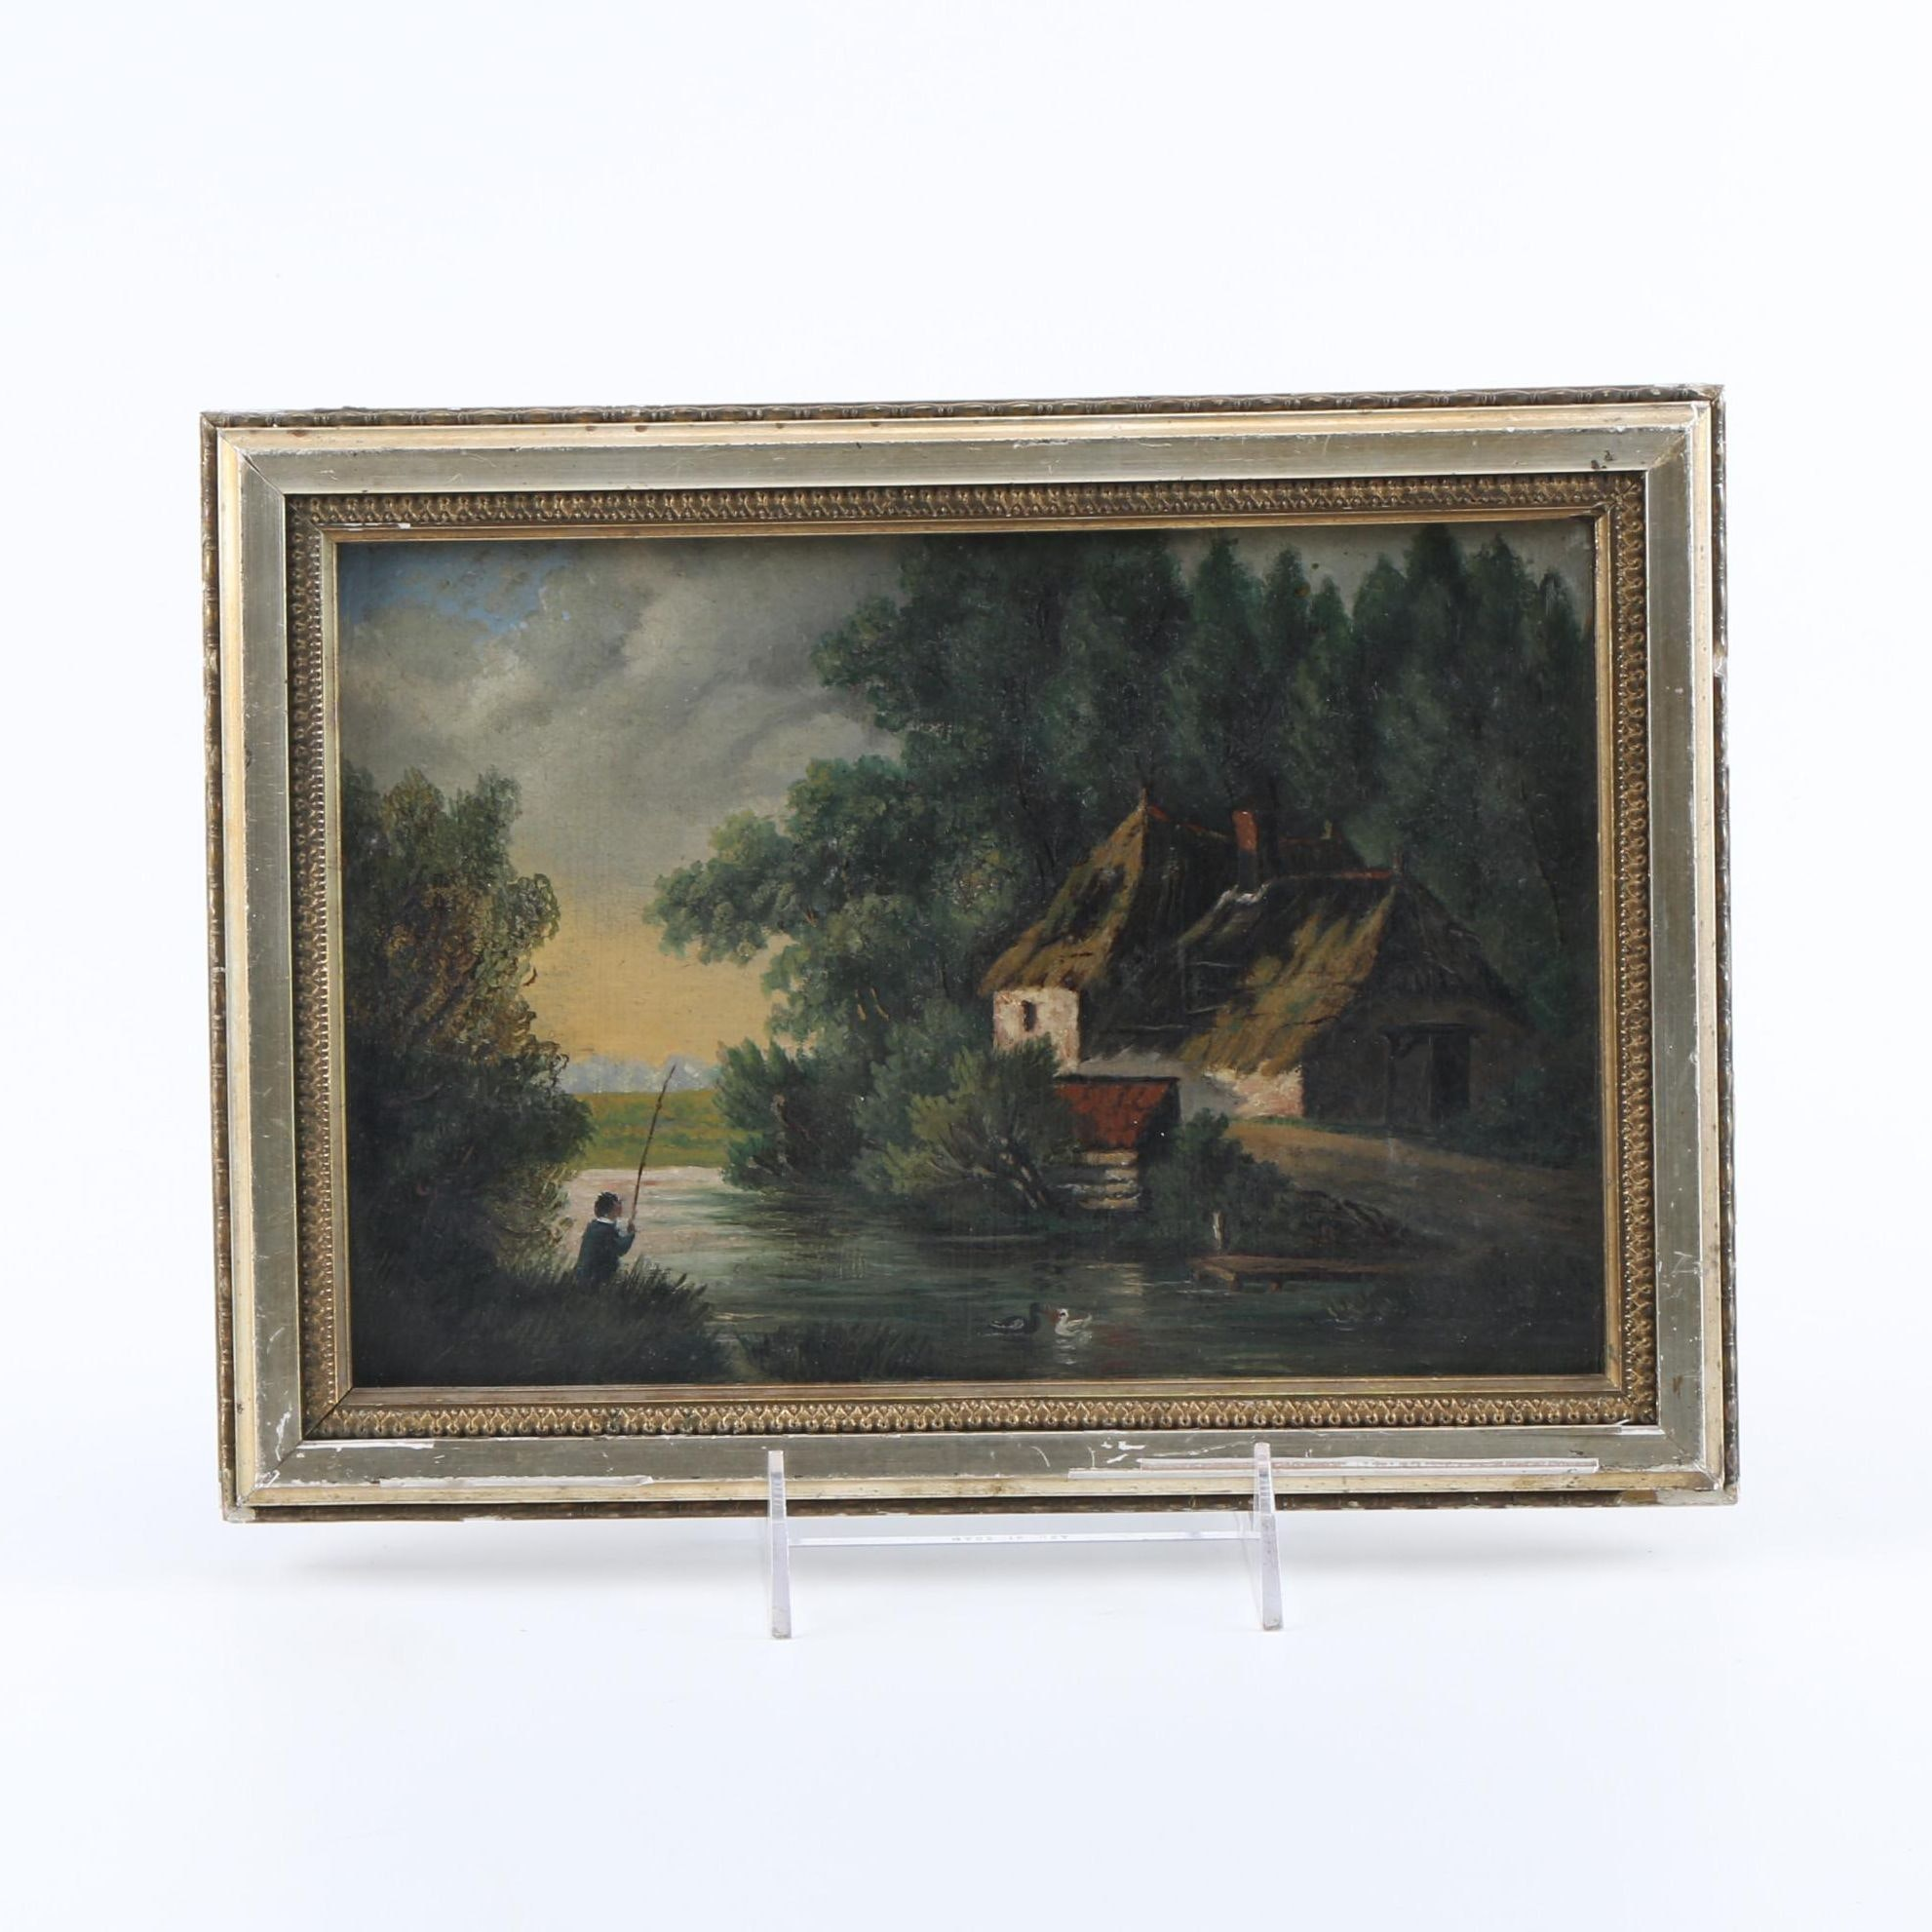 Original Oil Painting on Wood Panel Of River House